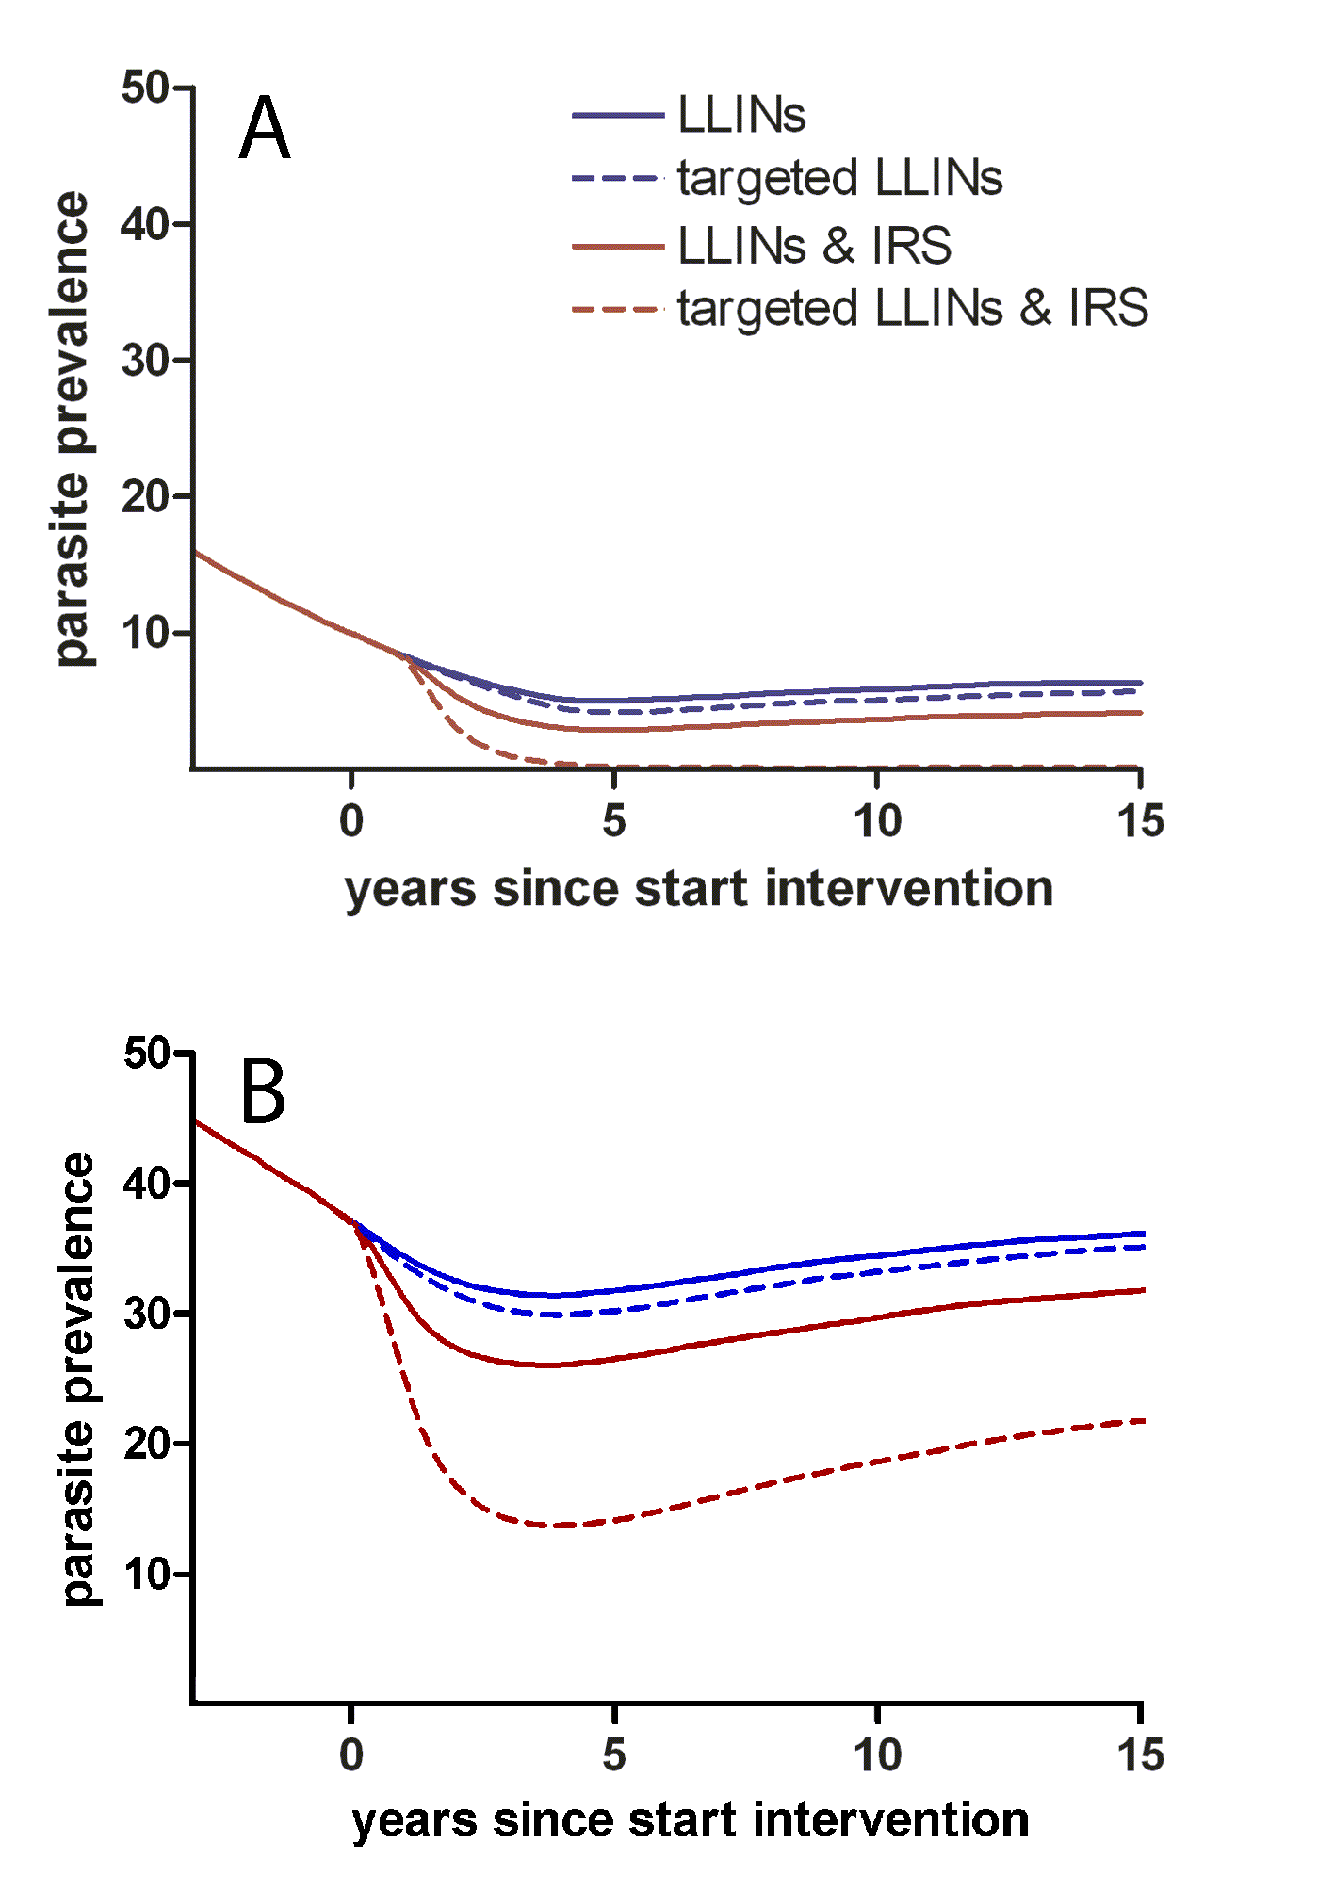 Targeted and untargeted interventions with long-lasting LLINs and IRS in a malaria elimination scenario.